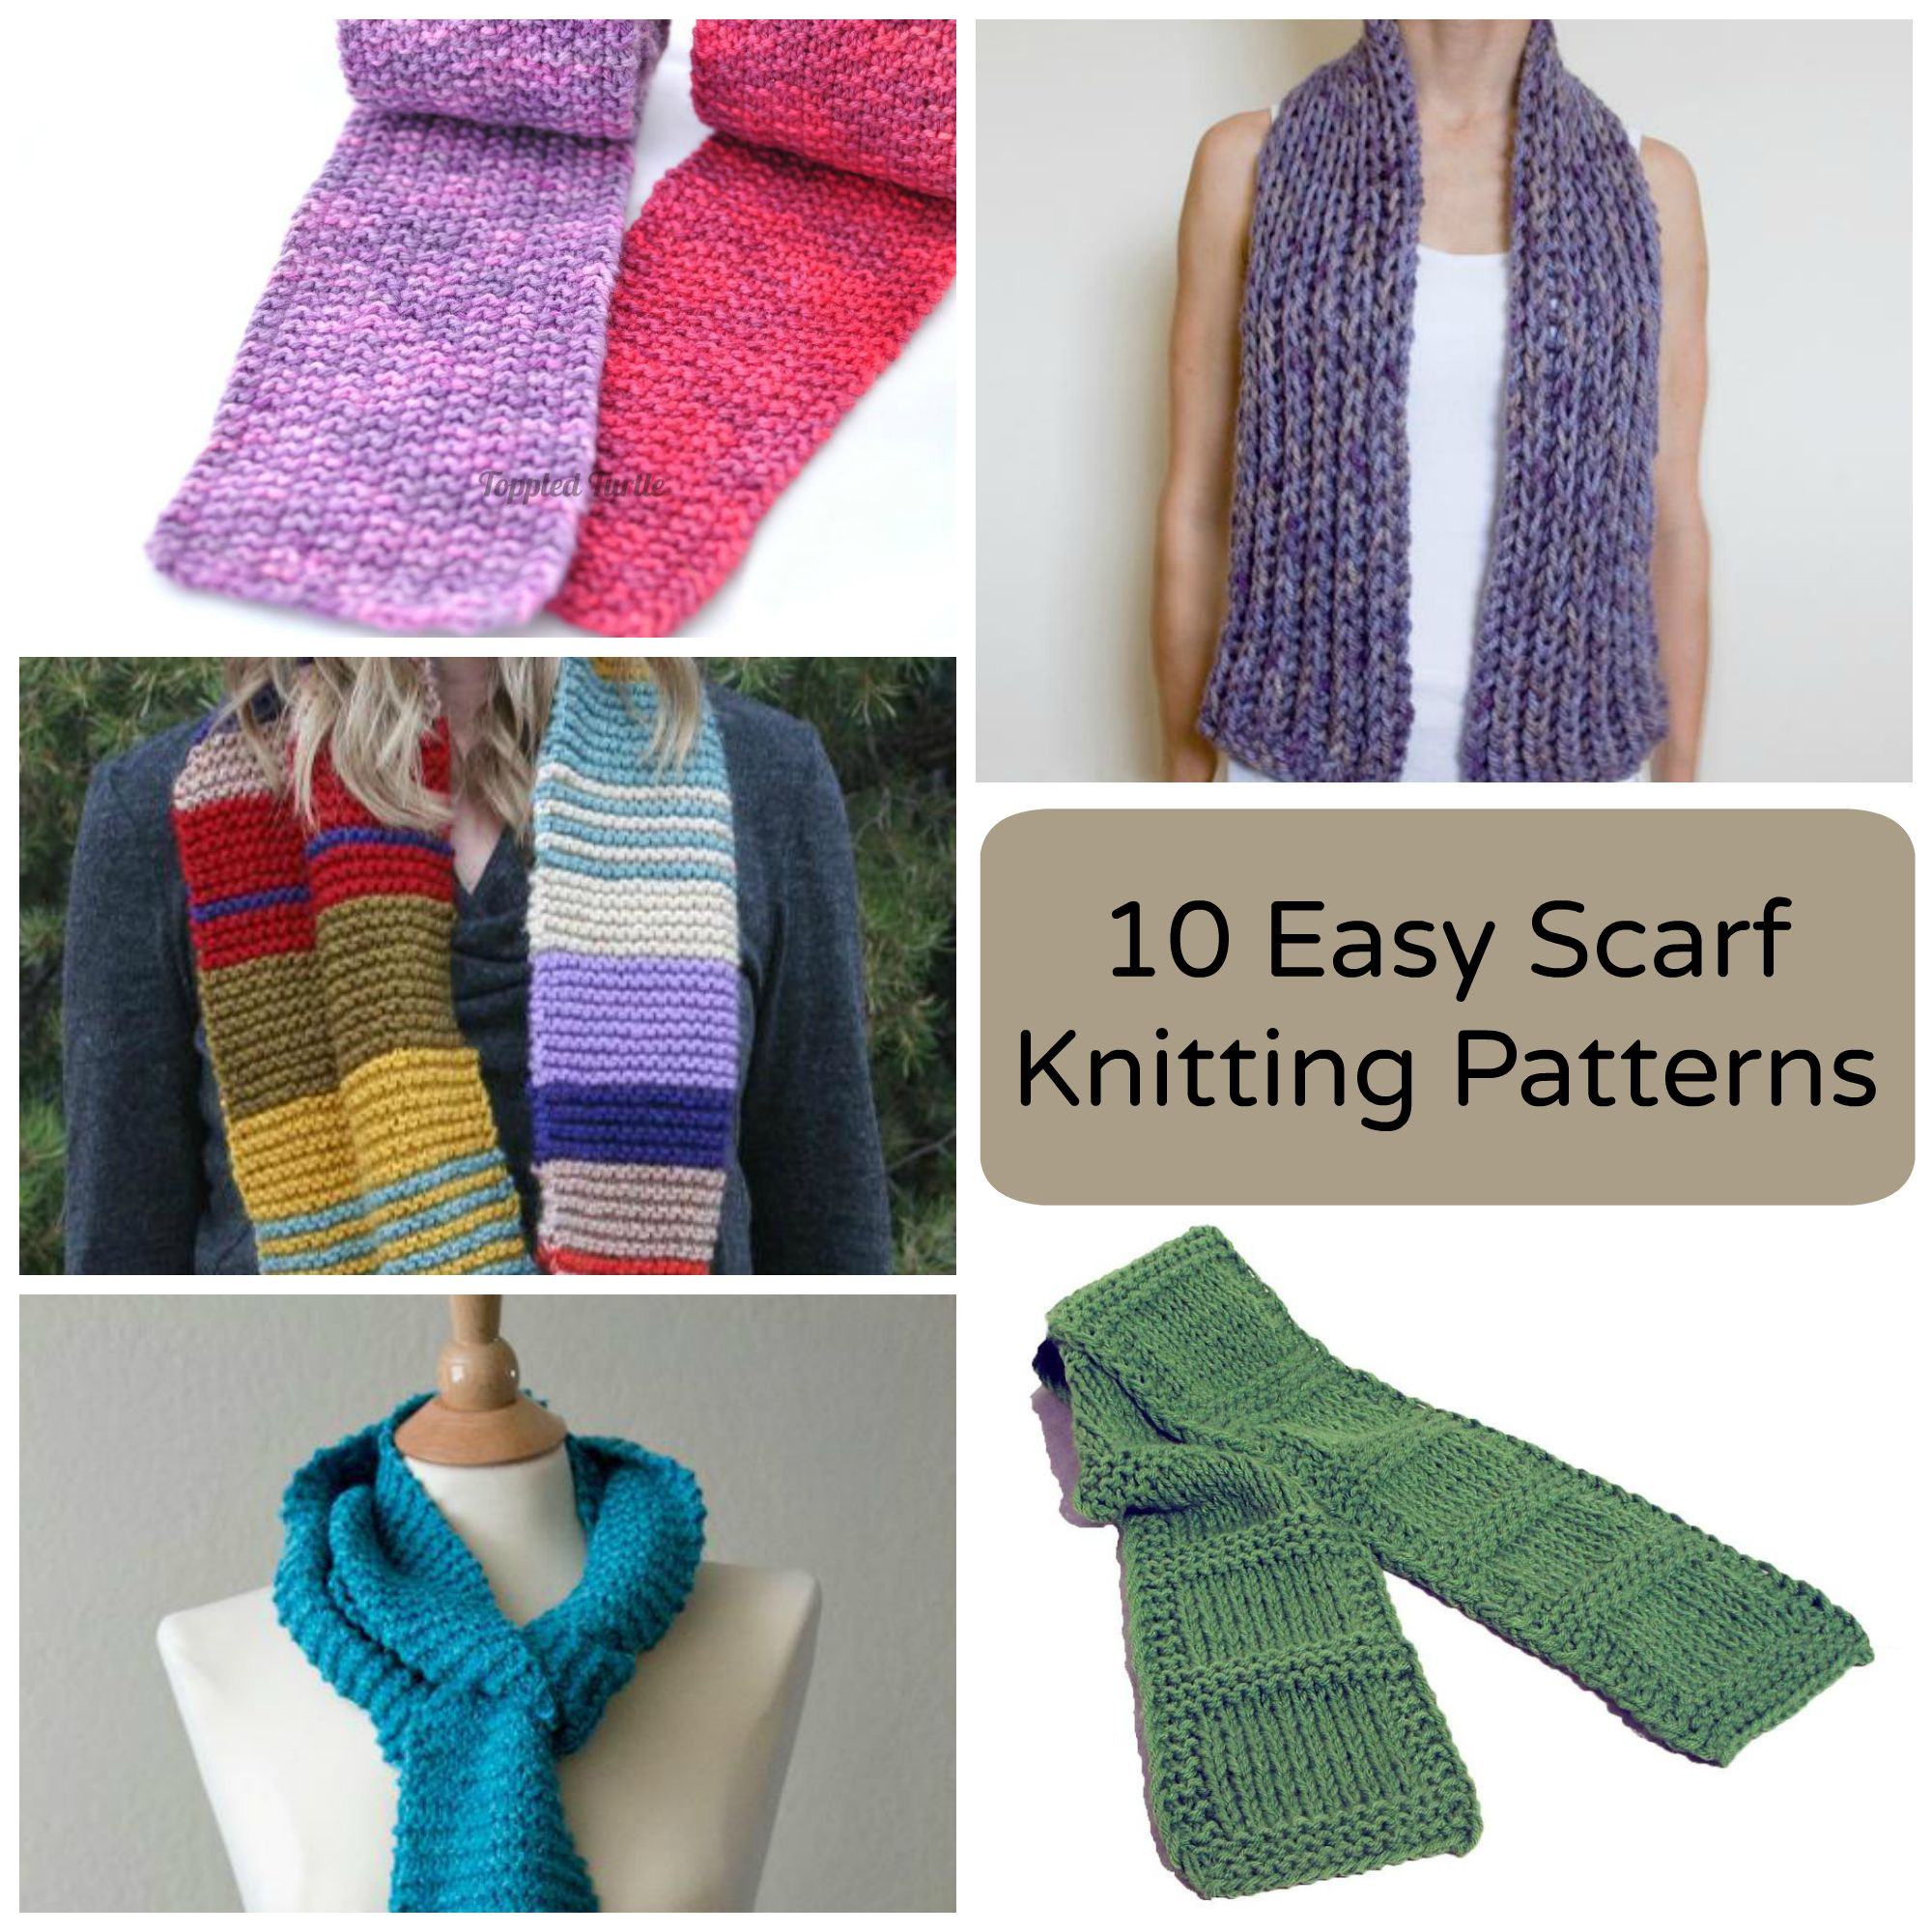 Unique 10 Easy Scarf Knitting Patterns for Beginners Easy Scarf Knitting Patterns for Beginners Of Adorable 49 Ideas Easy Scarf Knitting Patterns for Beginners